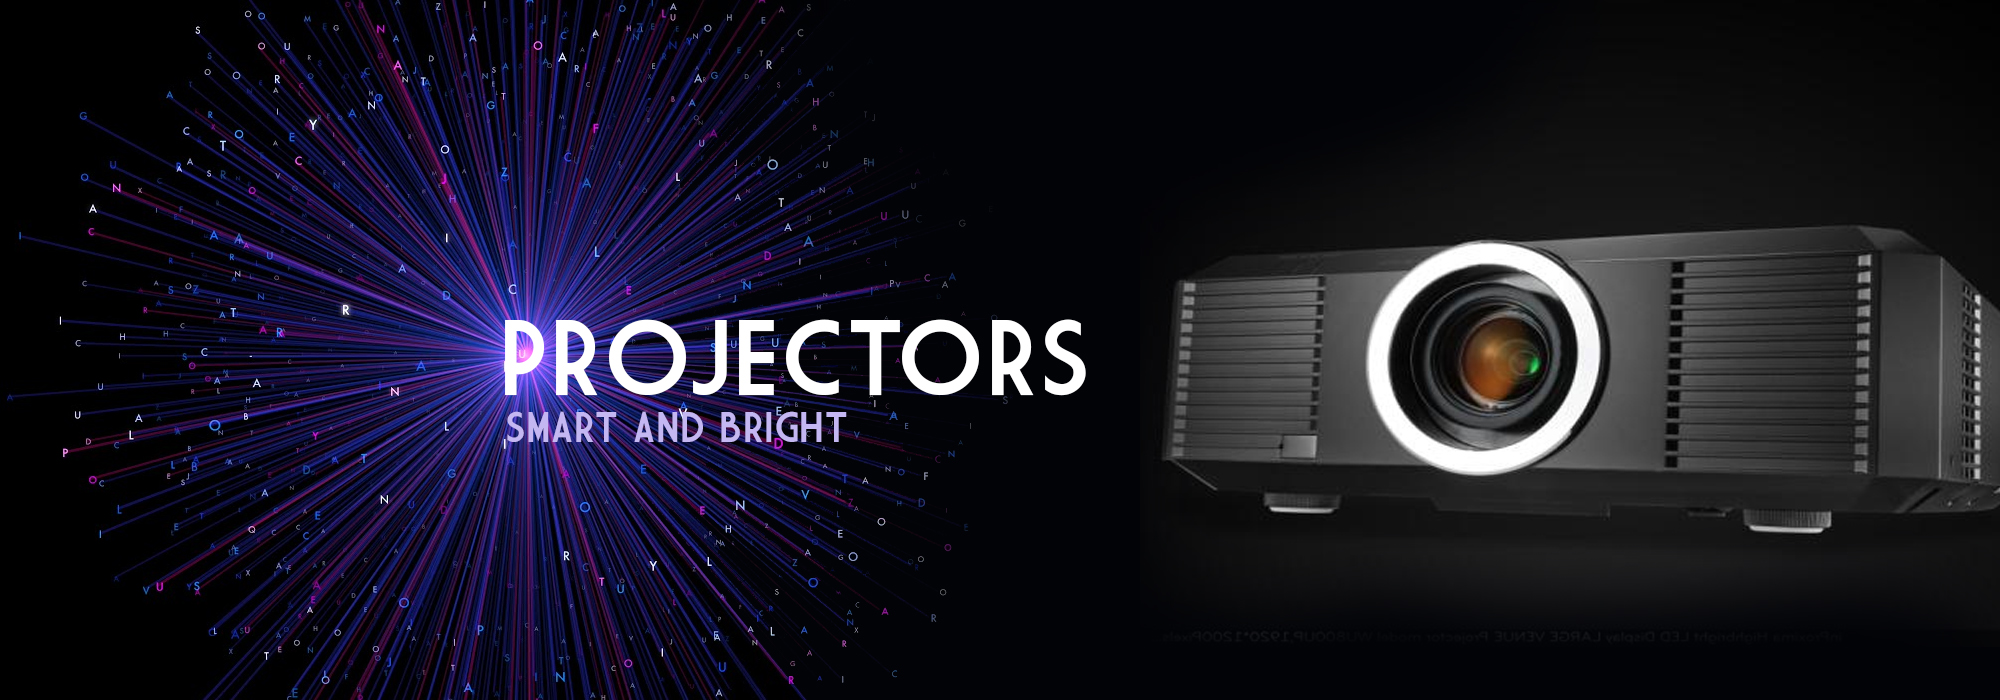 REVOLUTIONARY-SLIDER-PROJECTORS1